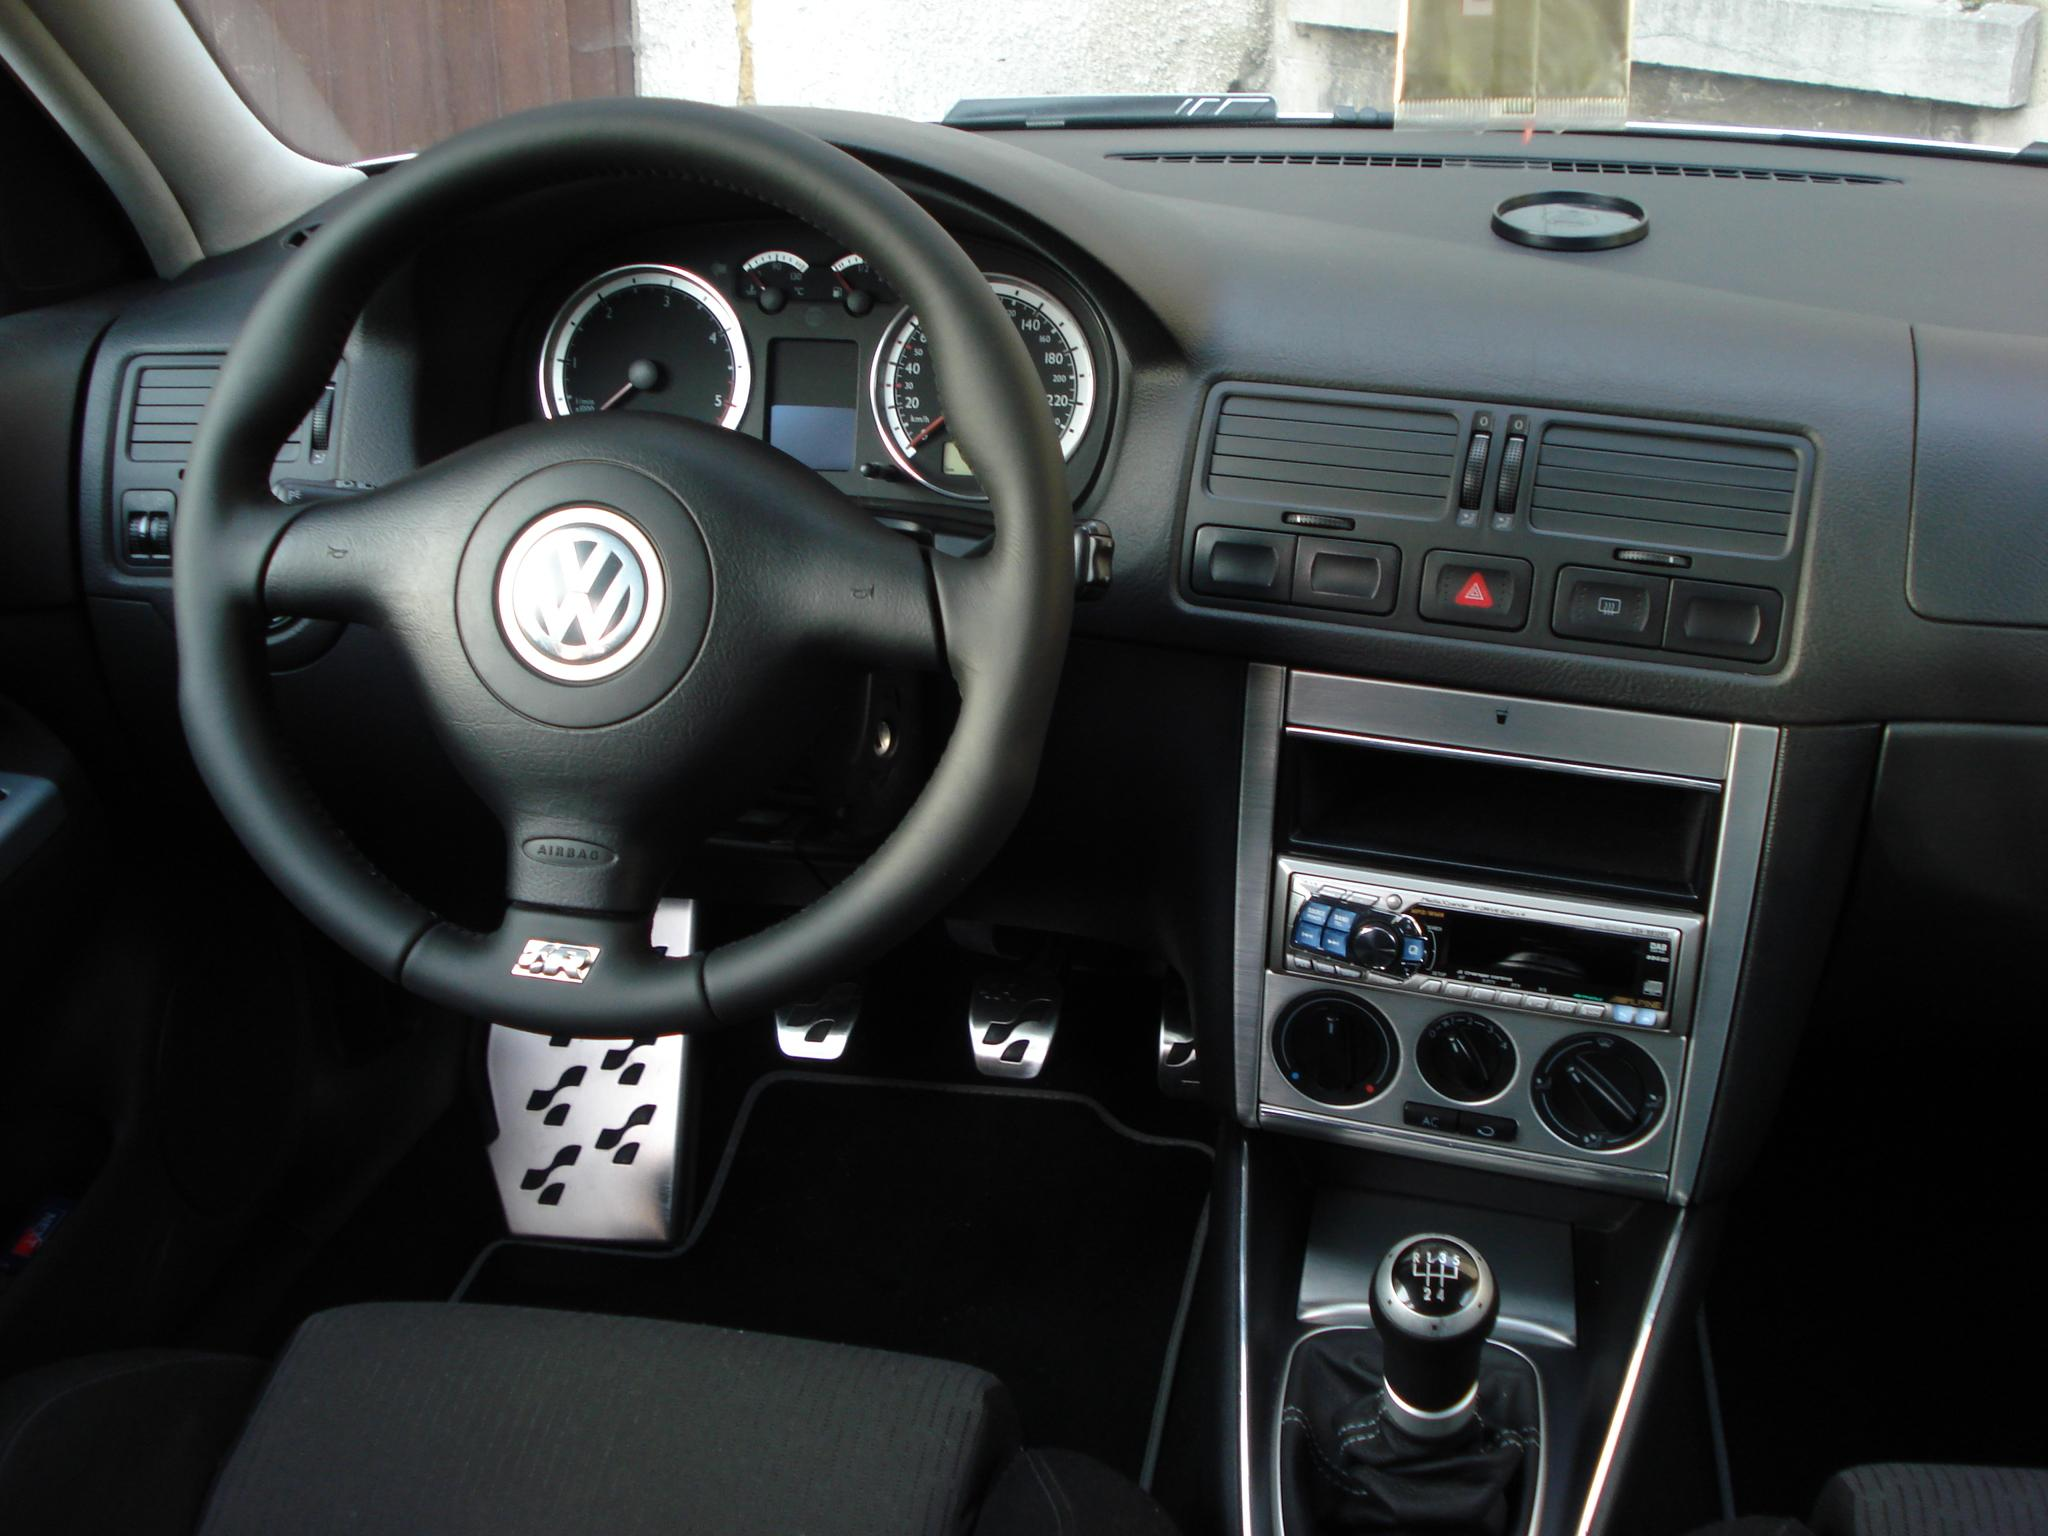 golf iv tdi 90 de podo garage des golf iv tdi 90 page 14 forum volkswagen golf iv. Black Bedroom Furniture Sets. Home Design Ideas